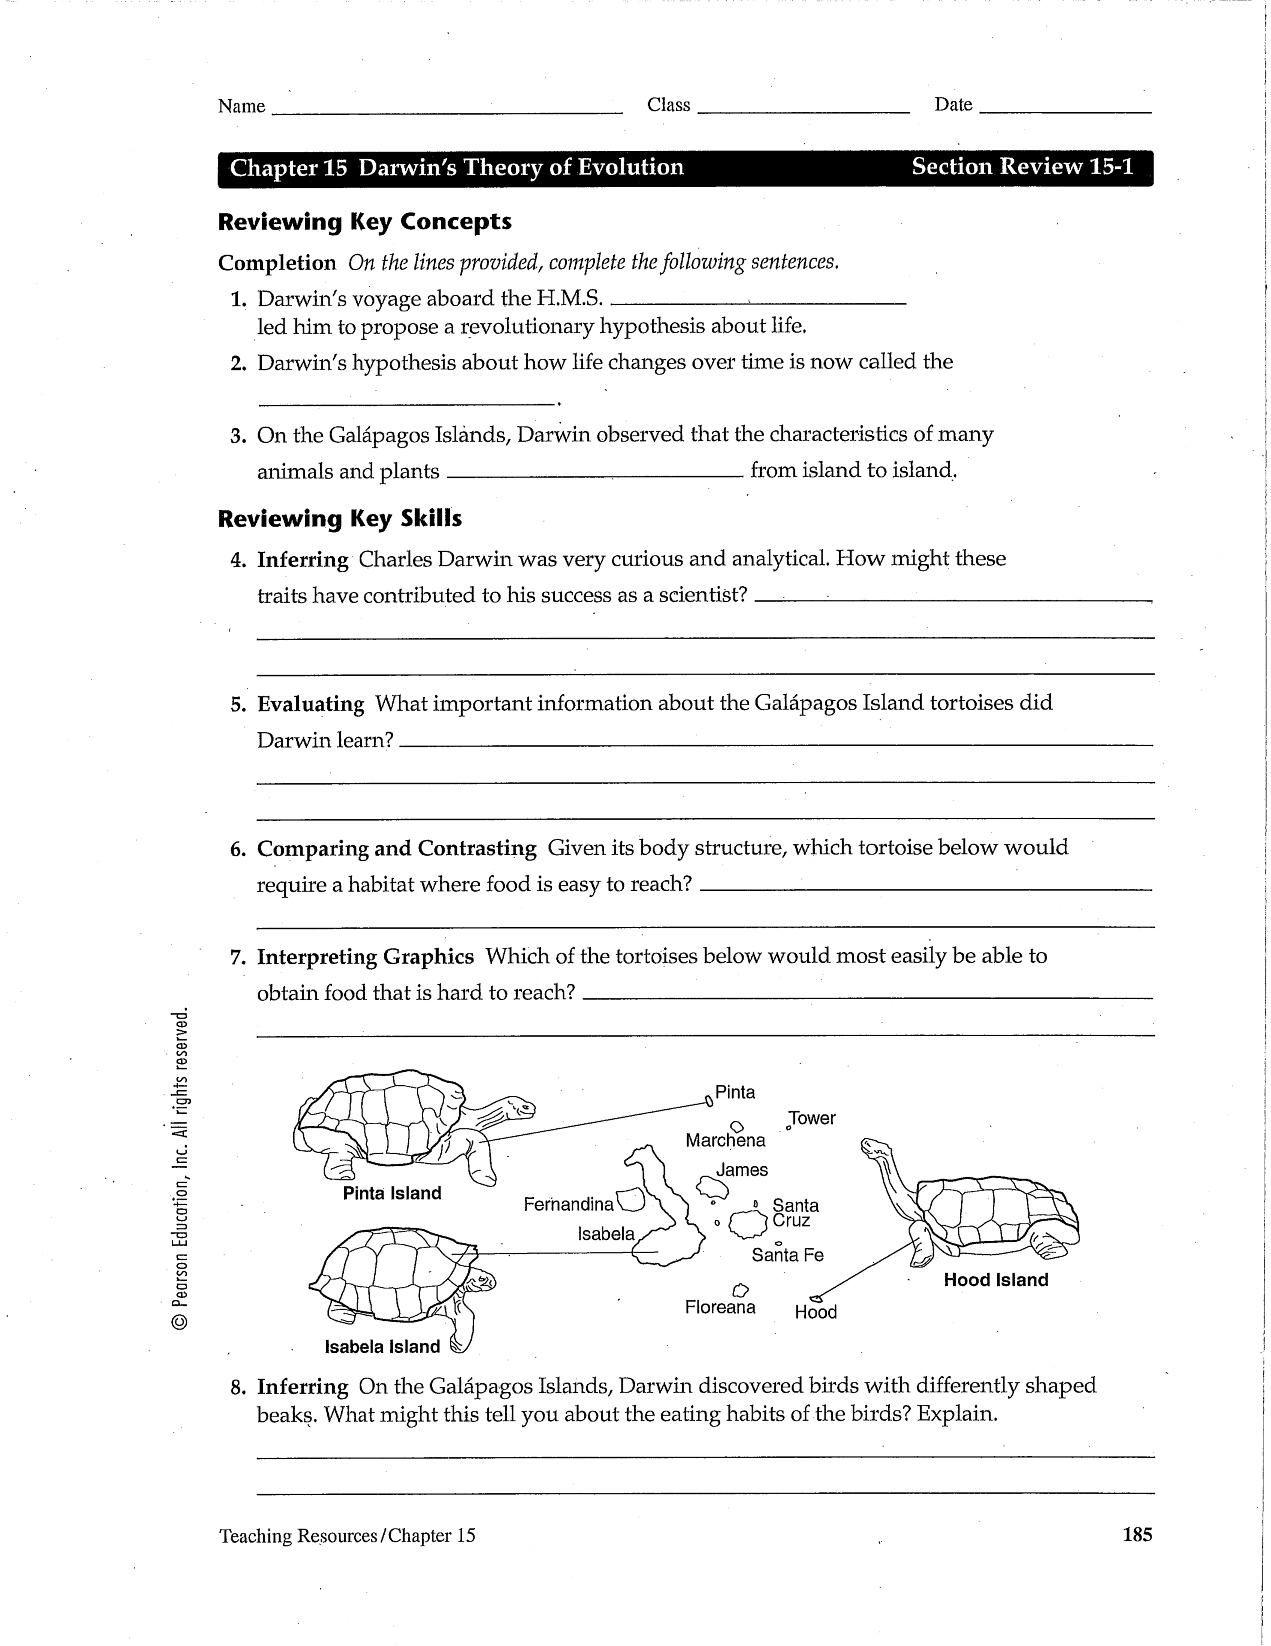 Darwin's Theory of Evolution Worksheet | Chapter 15 Theory of ...